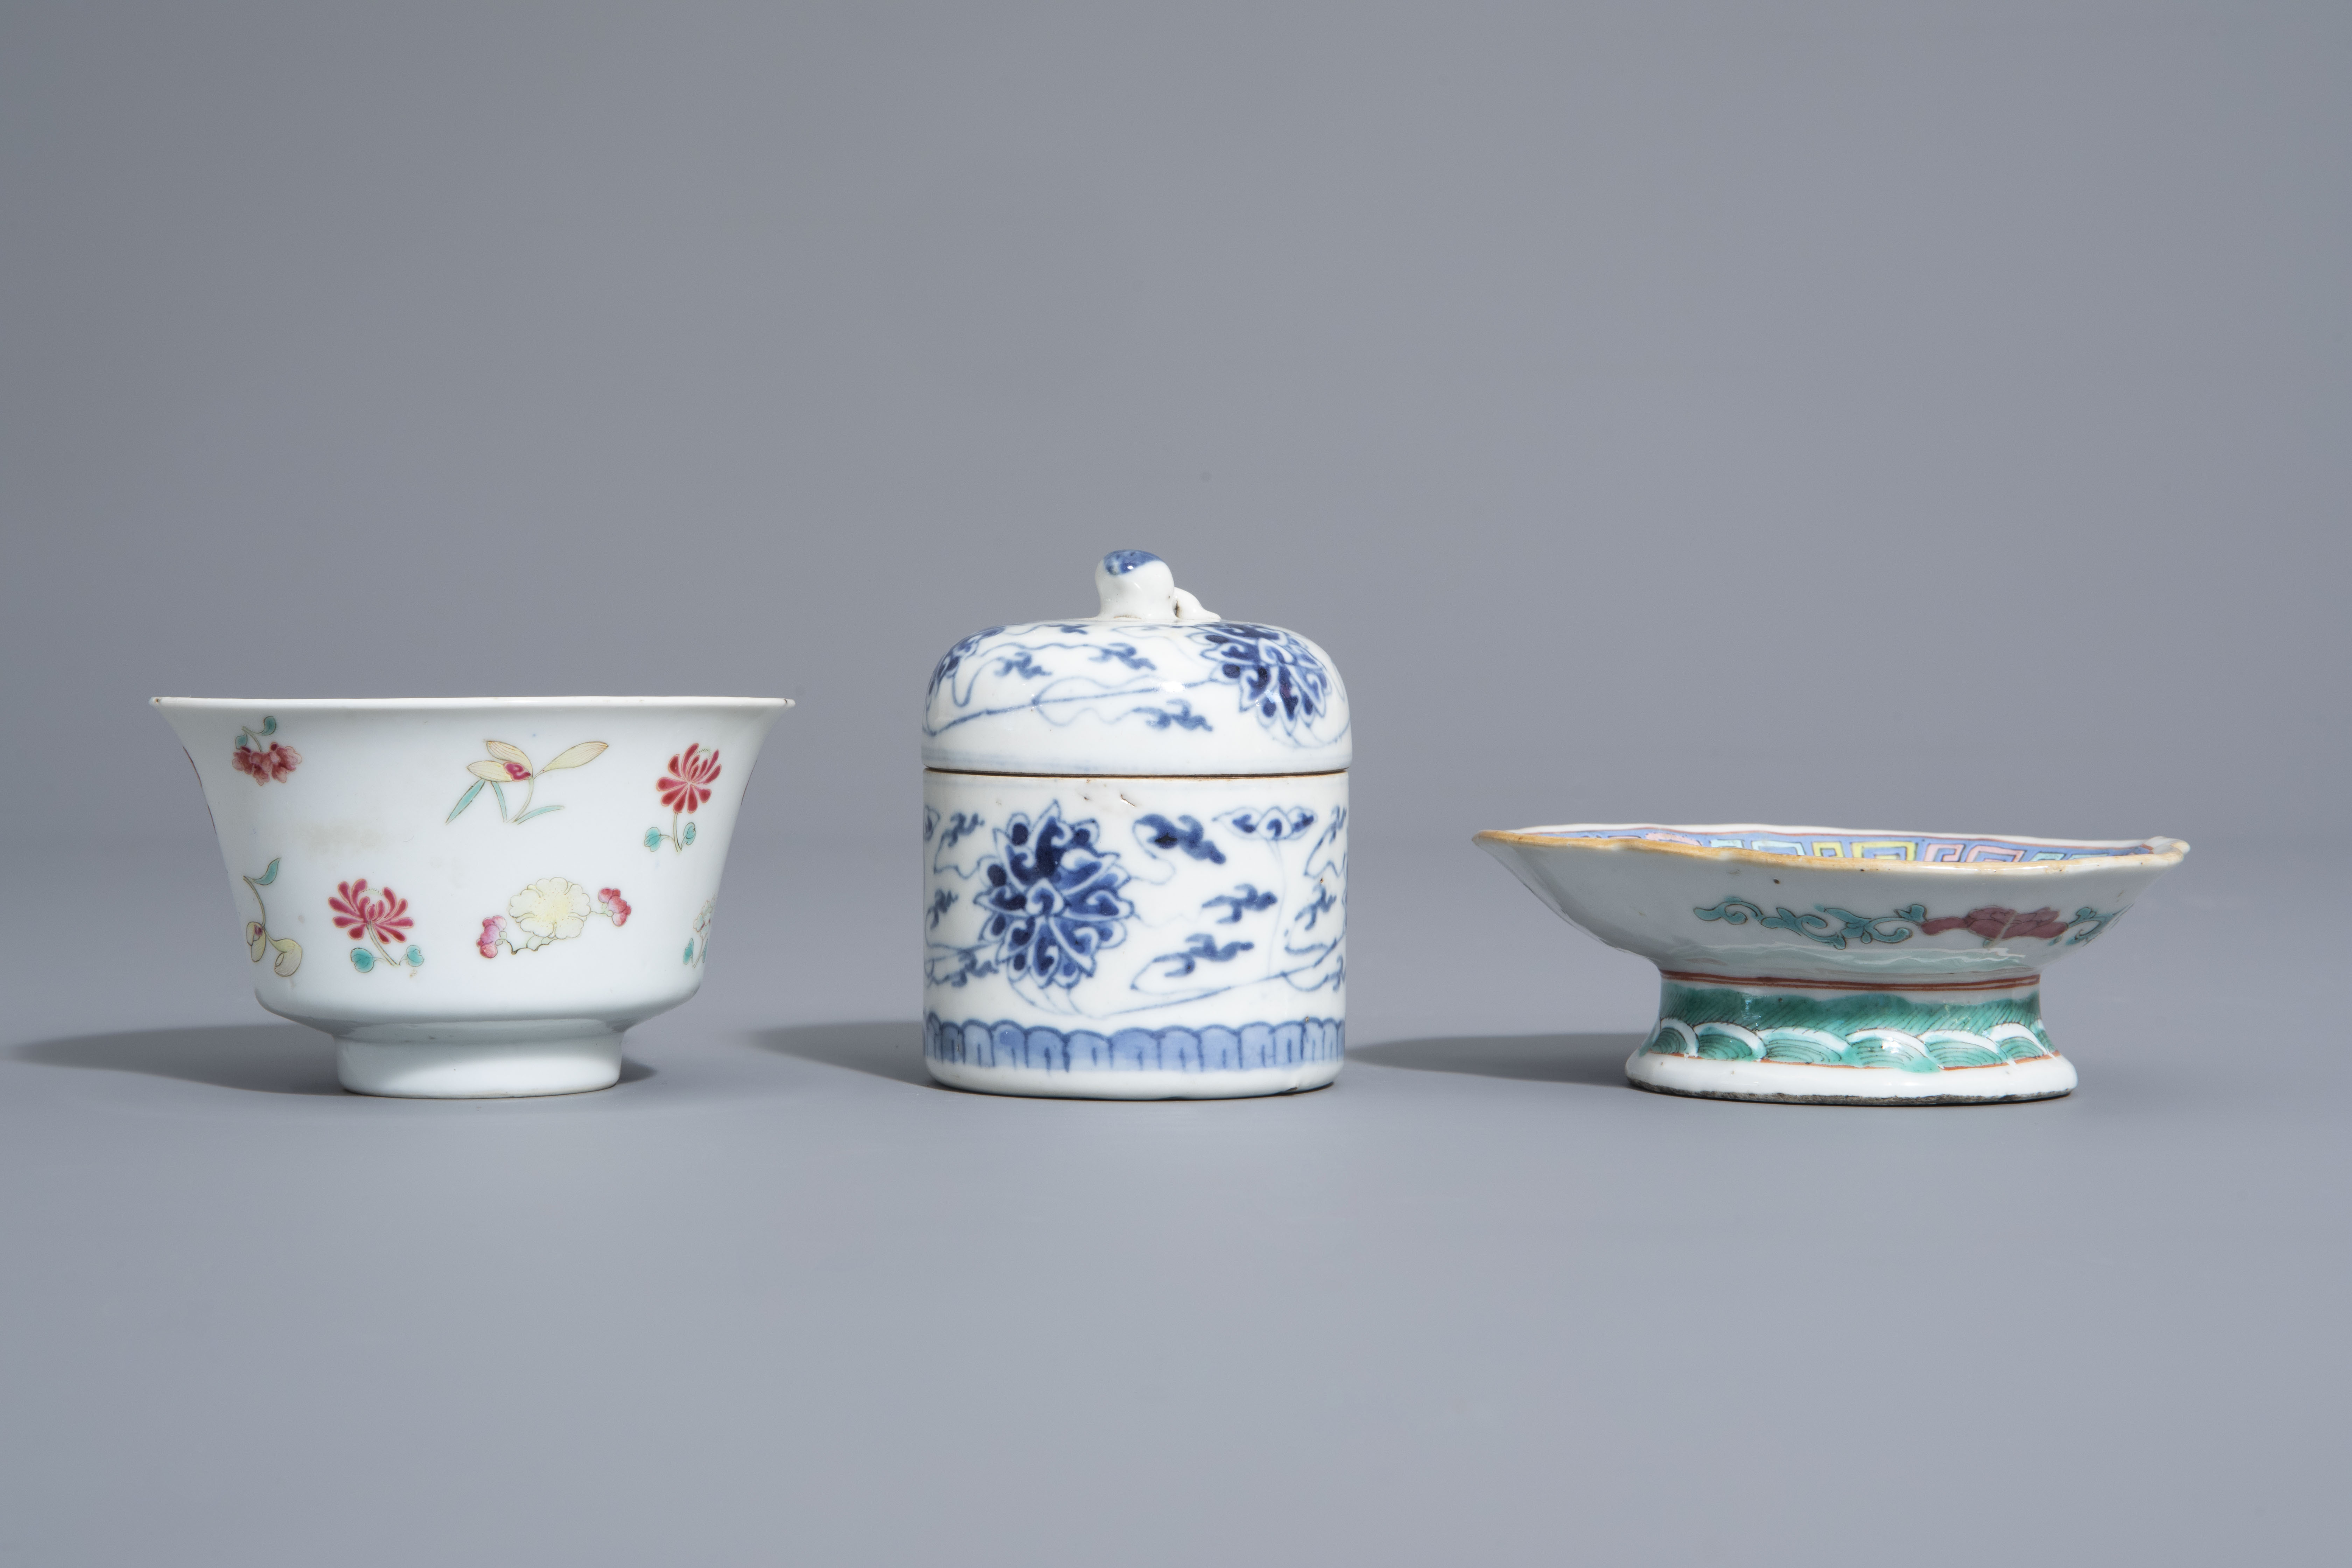 A varied collection of Chinese blue and white and famille rose porcelain, 19th/20th C. - Image 9 of 15